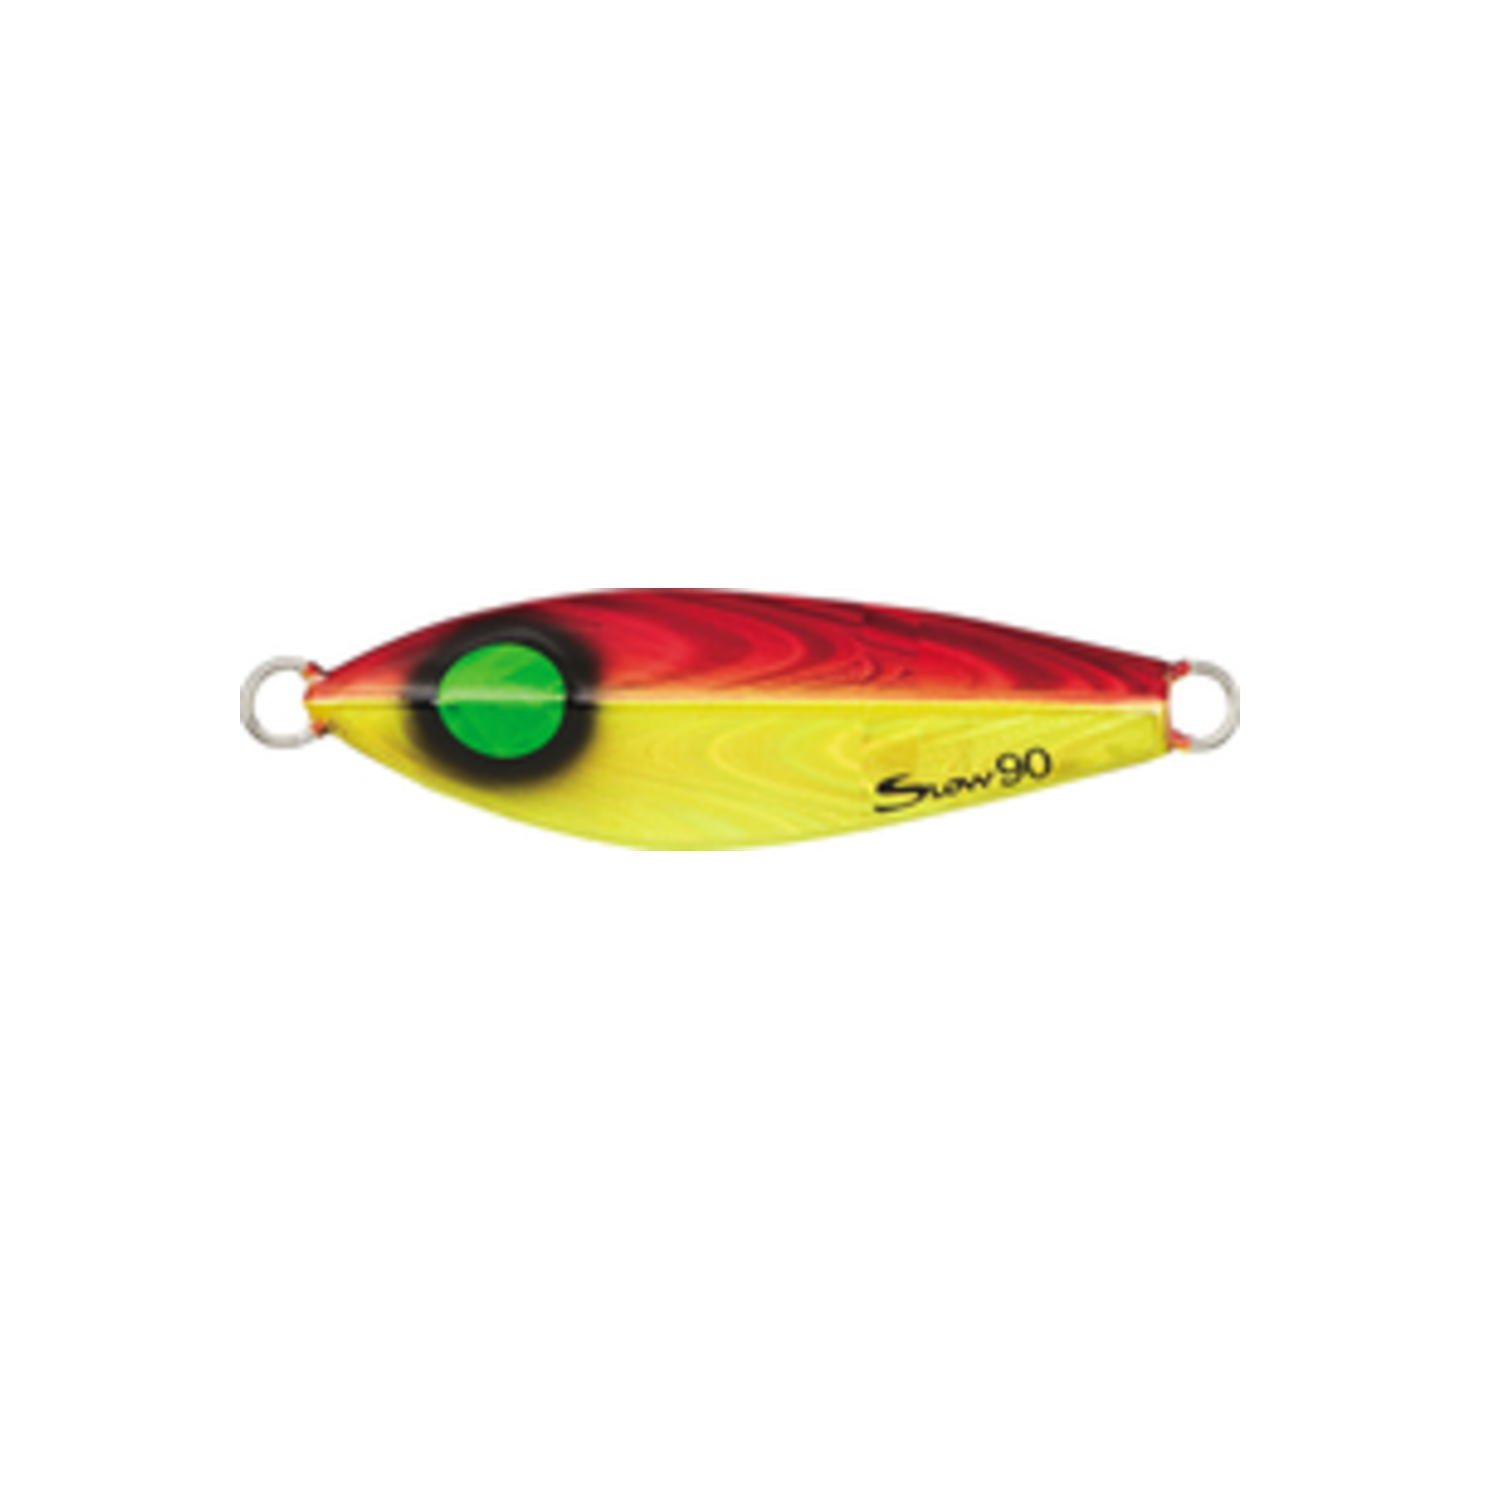 Hayabusa Lure greenical metal jig Jack eye throw 300g FS424 color Red gold Japan import